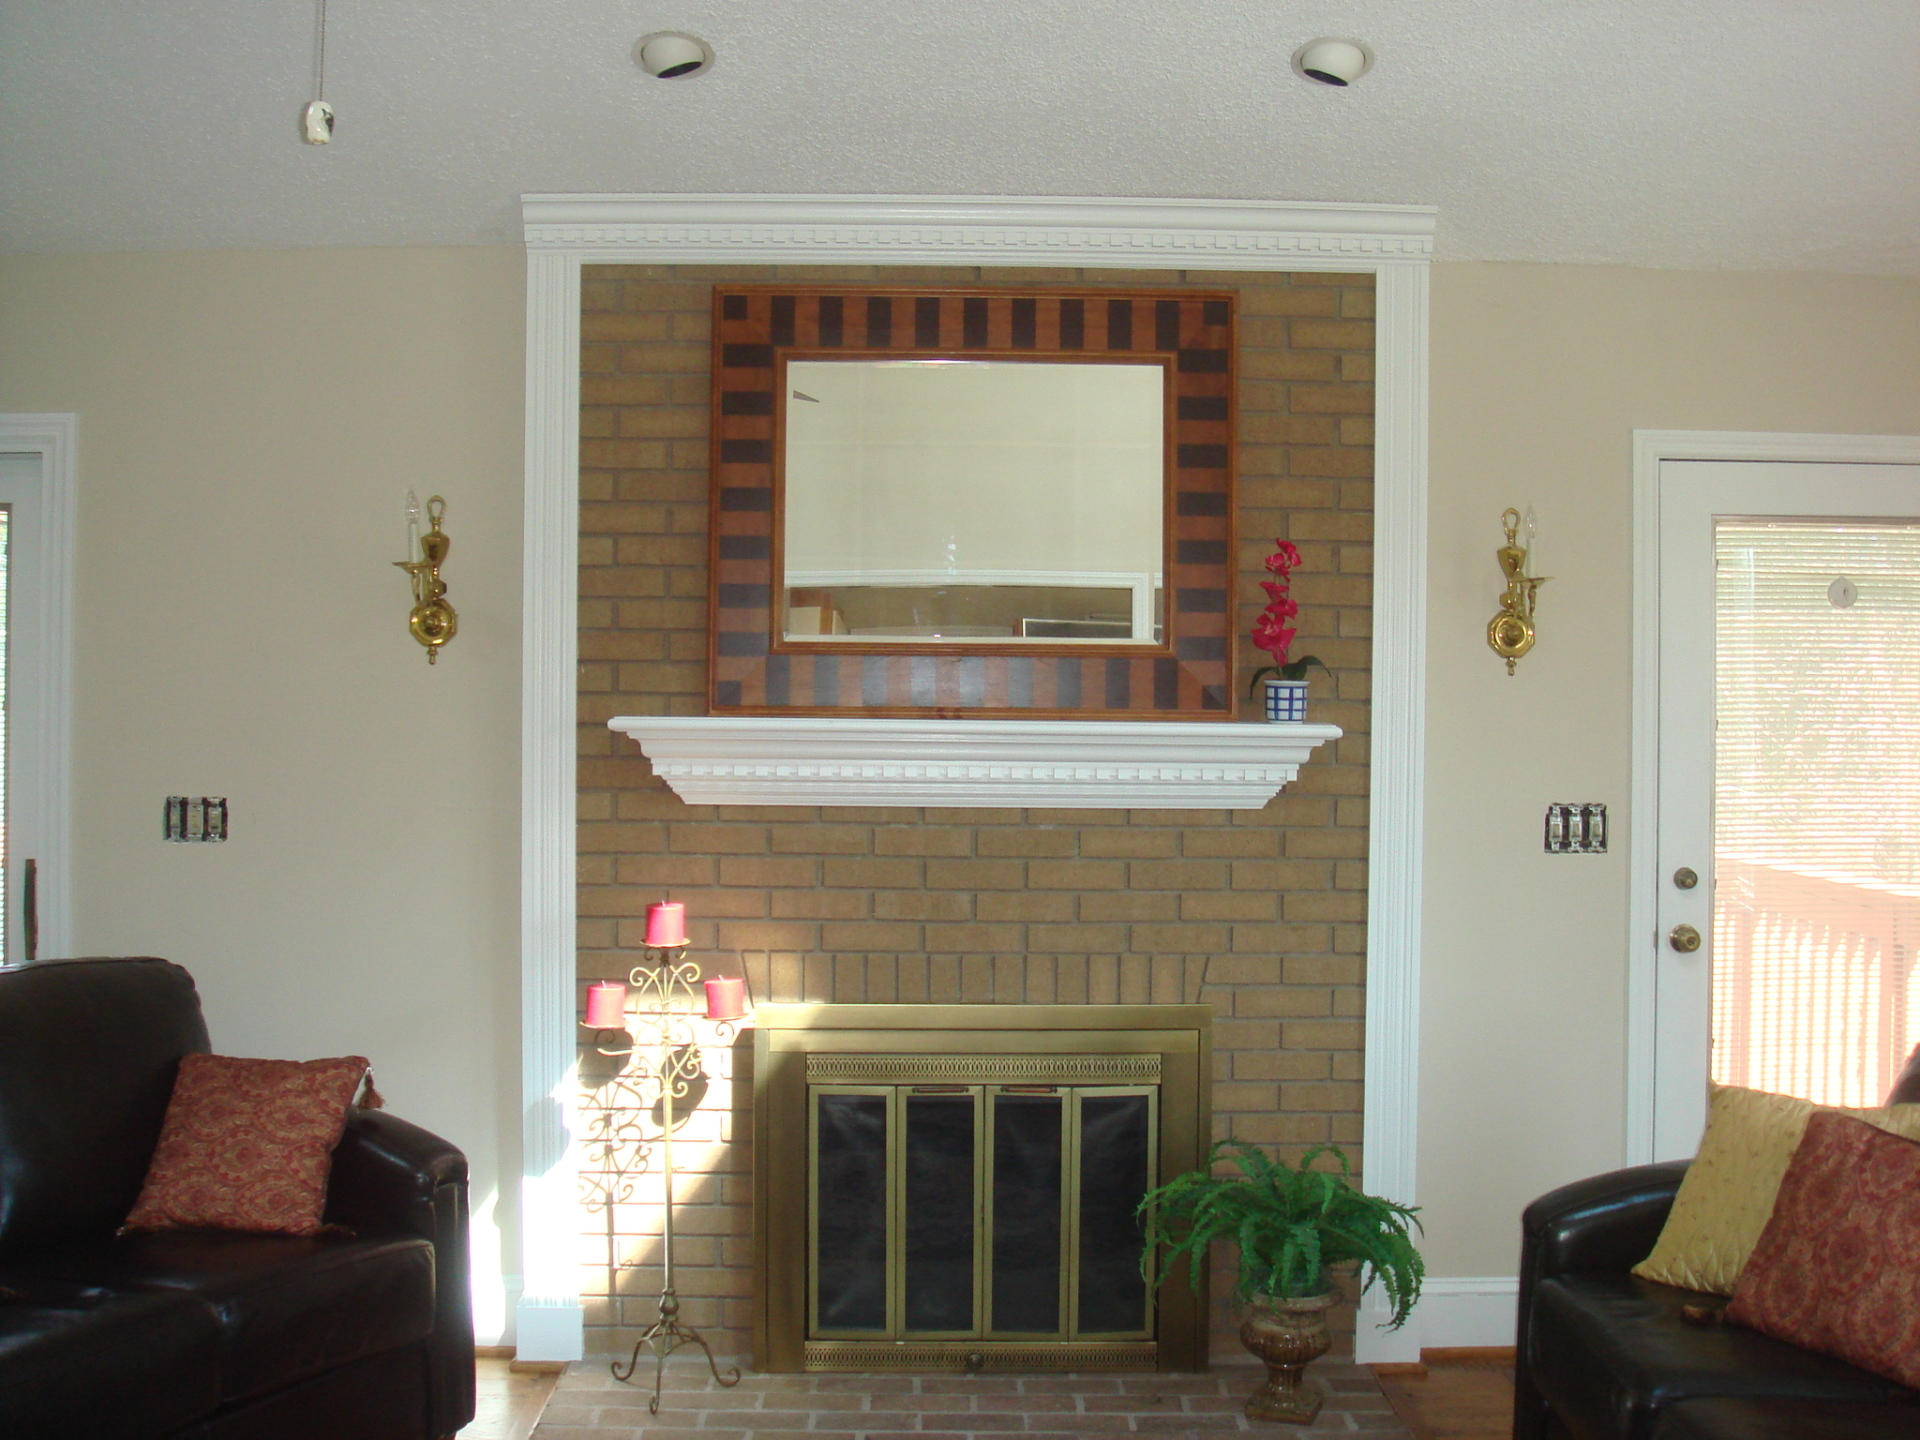 Interior Living Room with Fireplace